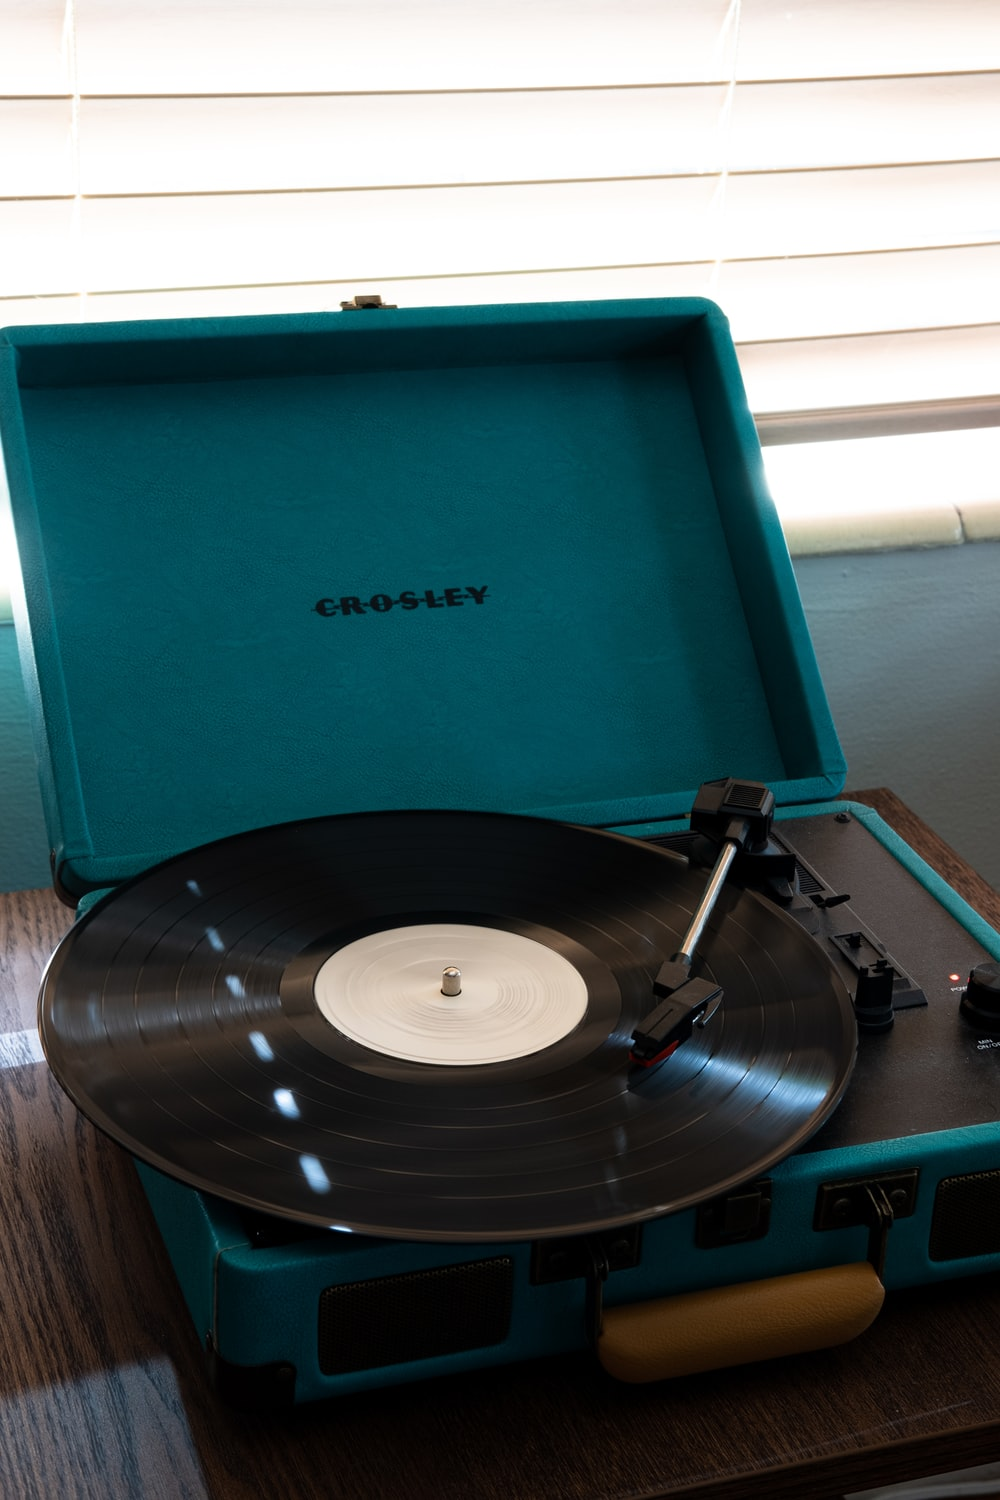 blue and black vinyl record player